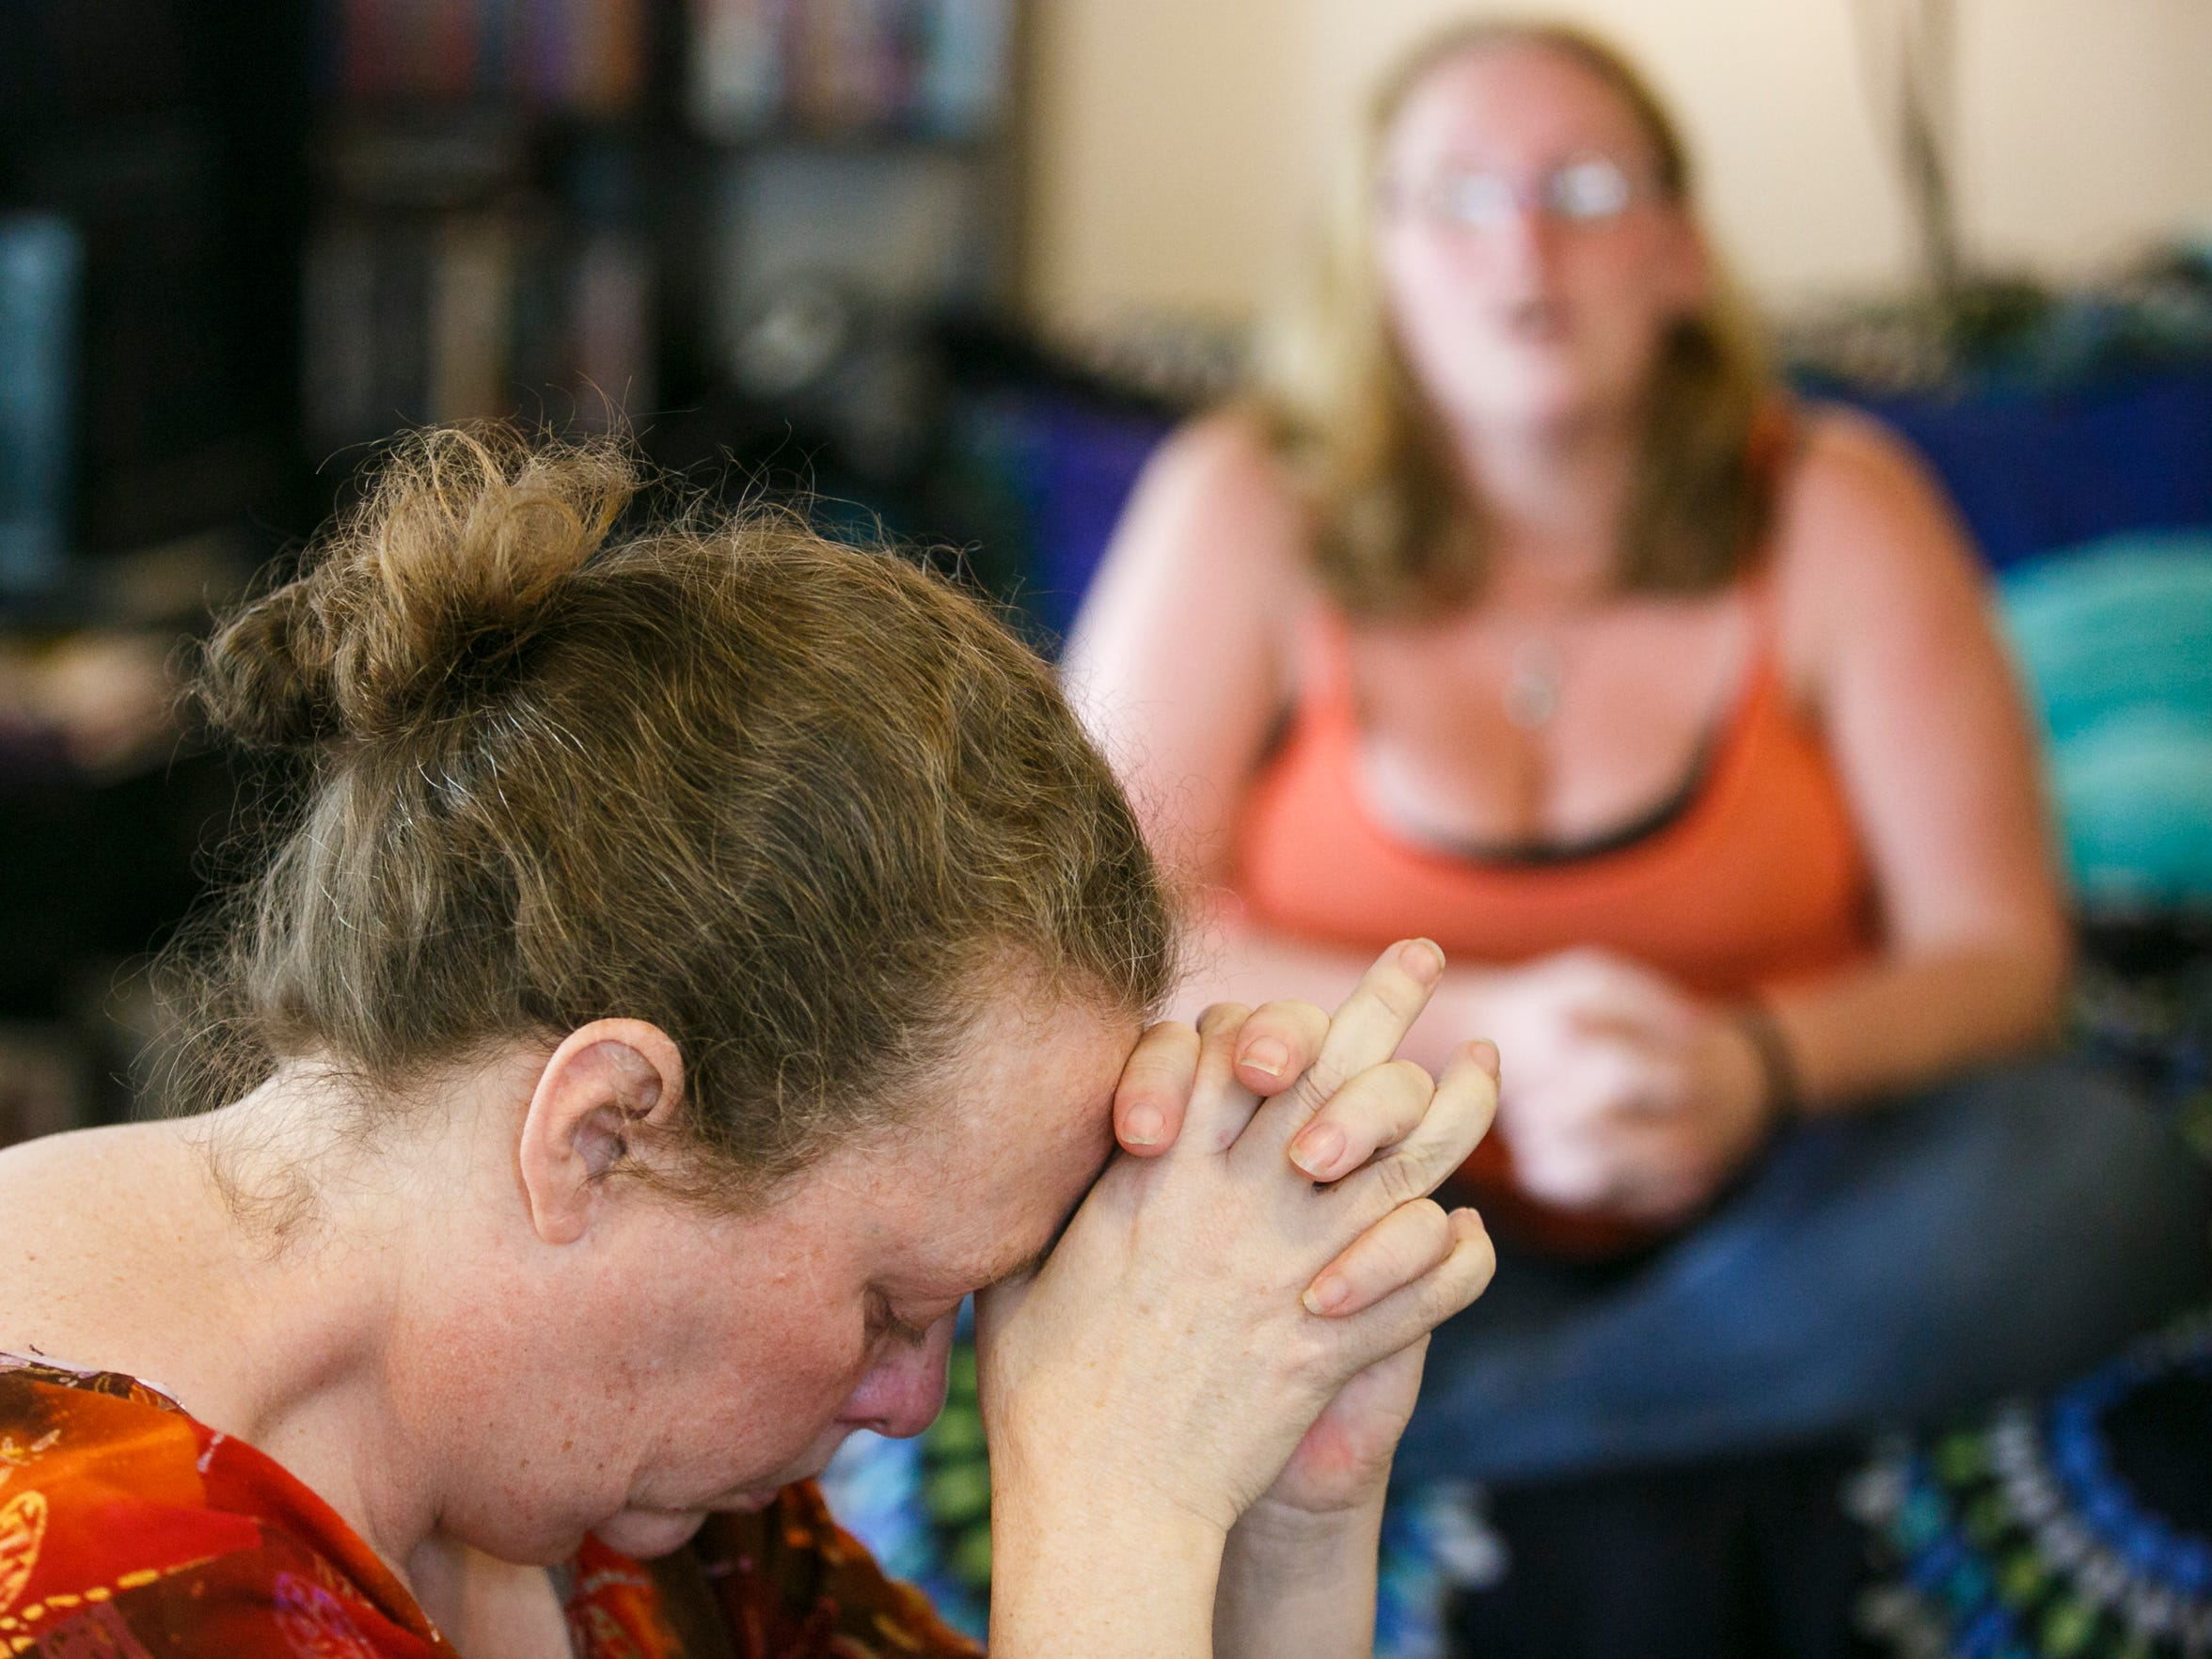 """Penny Woods cries as her daughter Mia Storm recounts her childhood spent in foster care. Woods gave up her children to the state while experiencing mental health problems. """"Allowing my children to go into state care was the worst decision I ever made,"""" she said."""